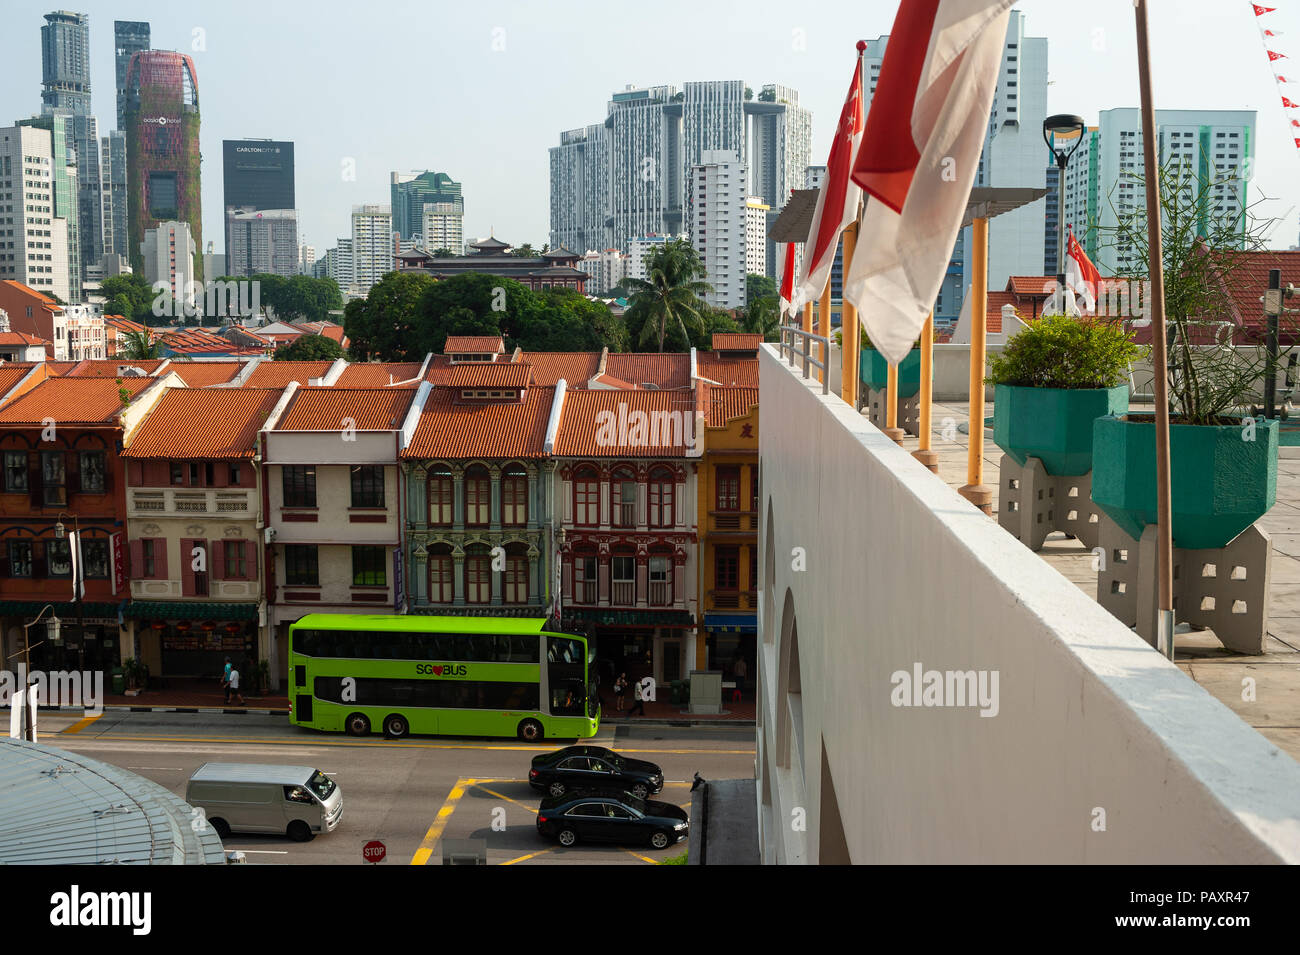 19.07.2018, Singapore, Republic of Singapore, Asia - An elevated view of traditional shophouses in Singapore's Chinatown district. - Stock Image